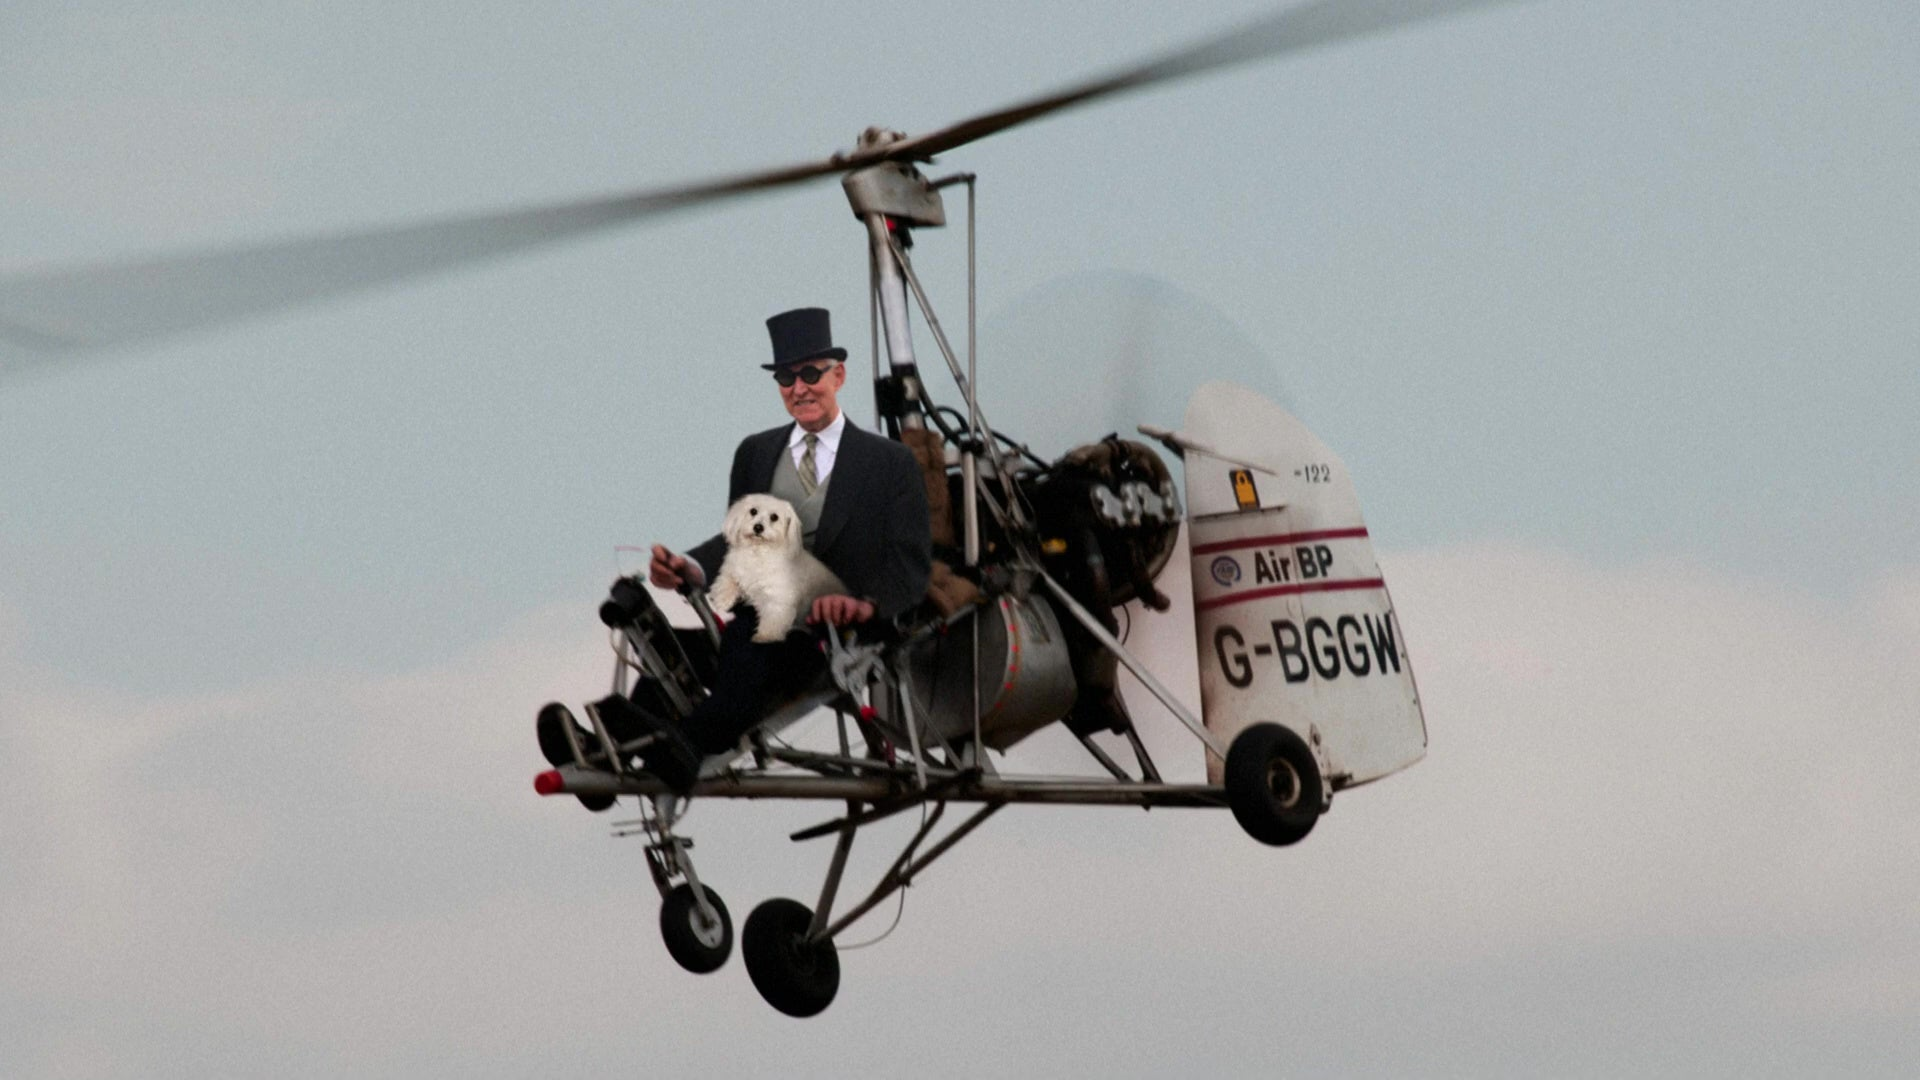 Roger Stone in an autogyro.